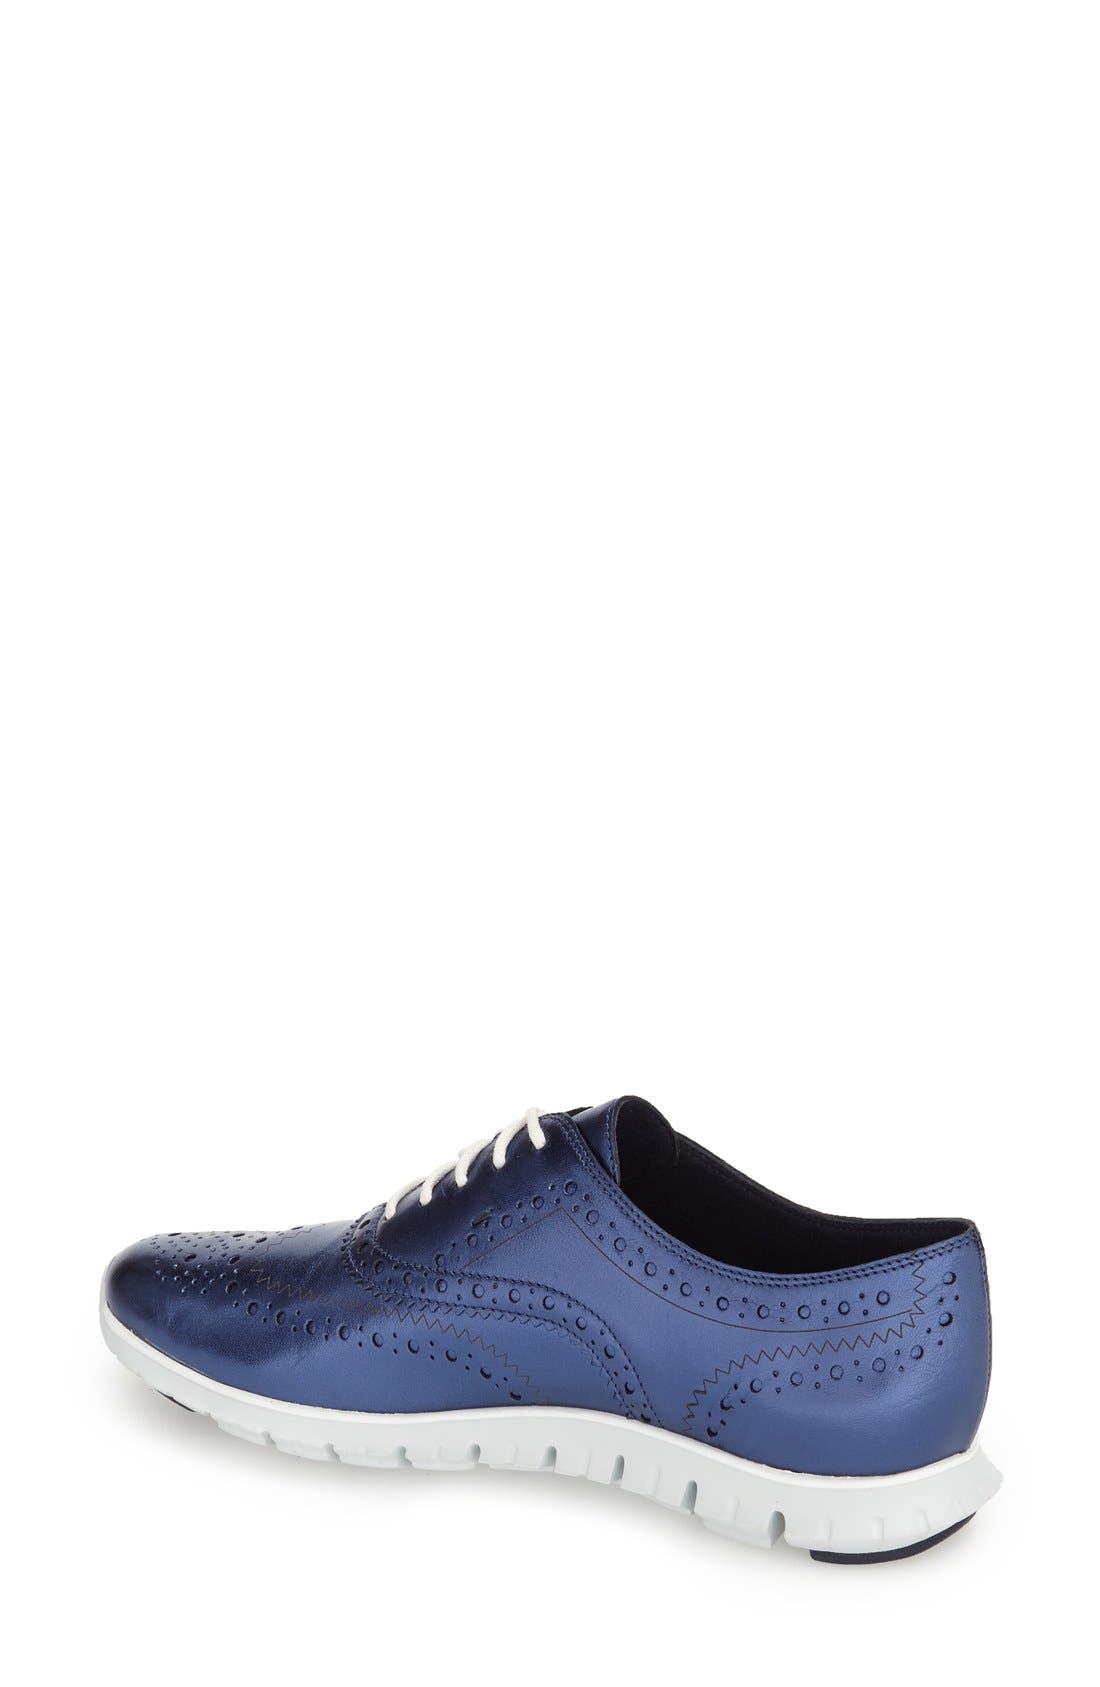 'ZeroGrand' Perforated Wingtip,                             Alternate thumbnail 48, color,